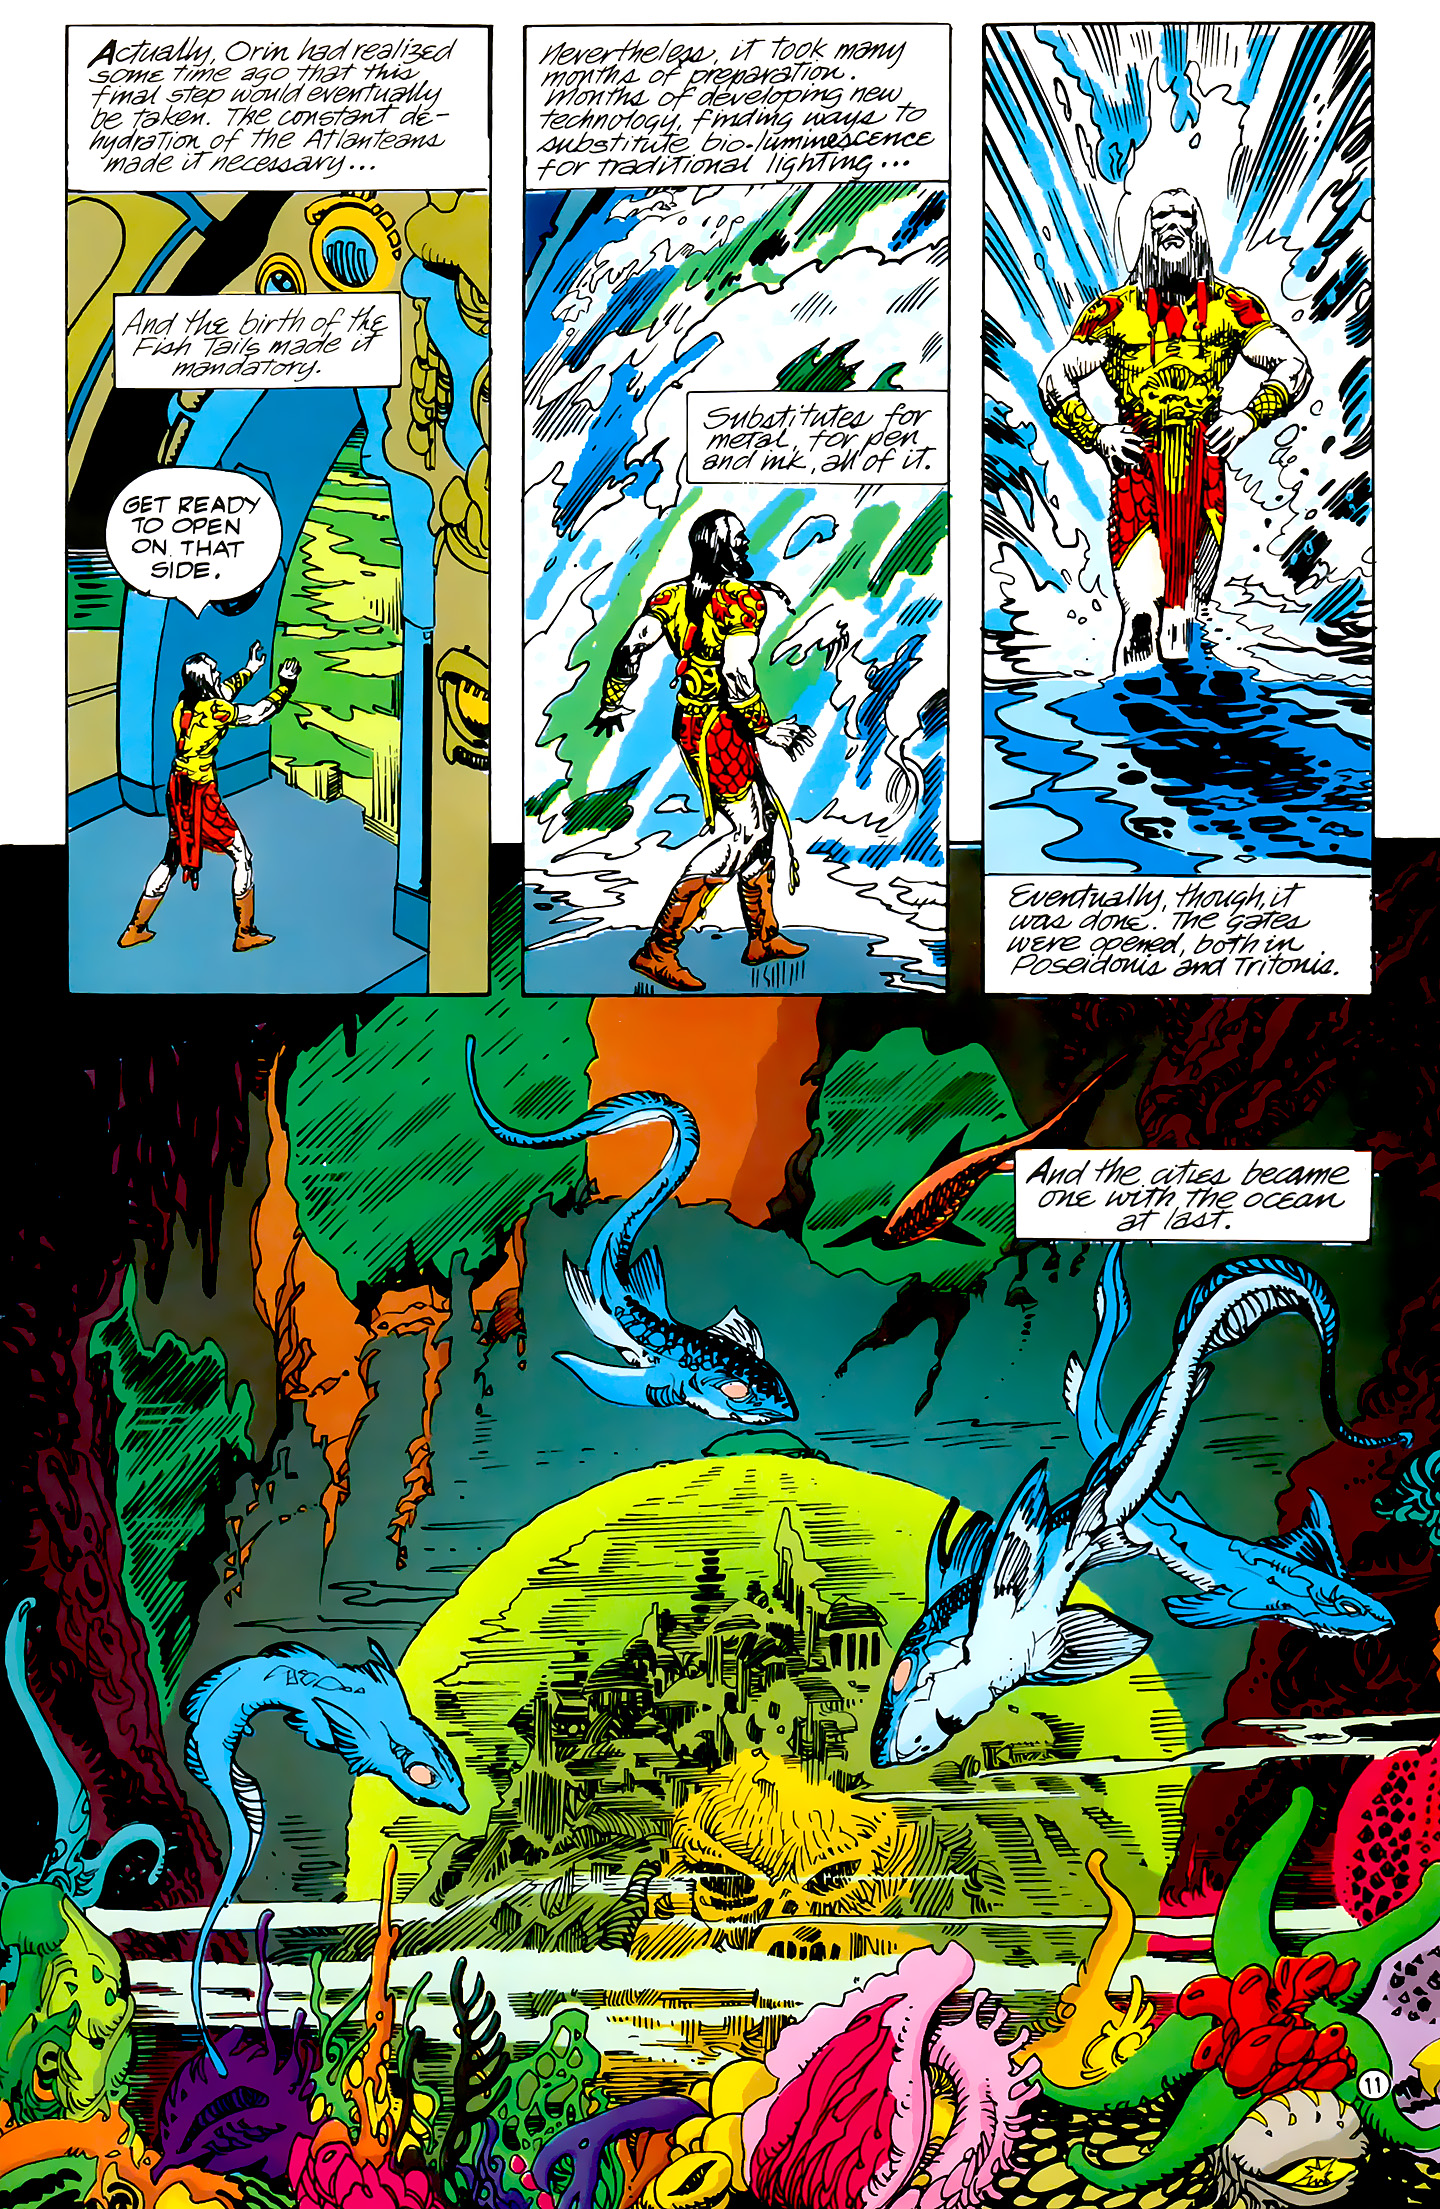 Read online Atlantis Chronicles comic -  Issue #4 - 11